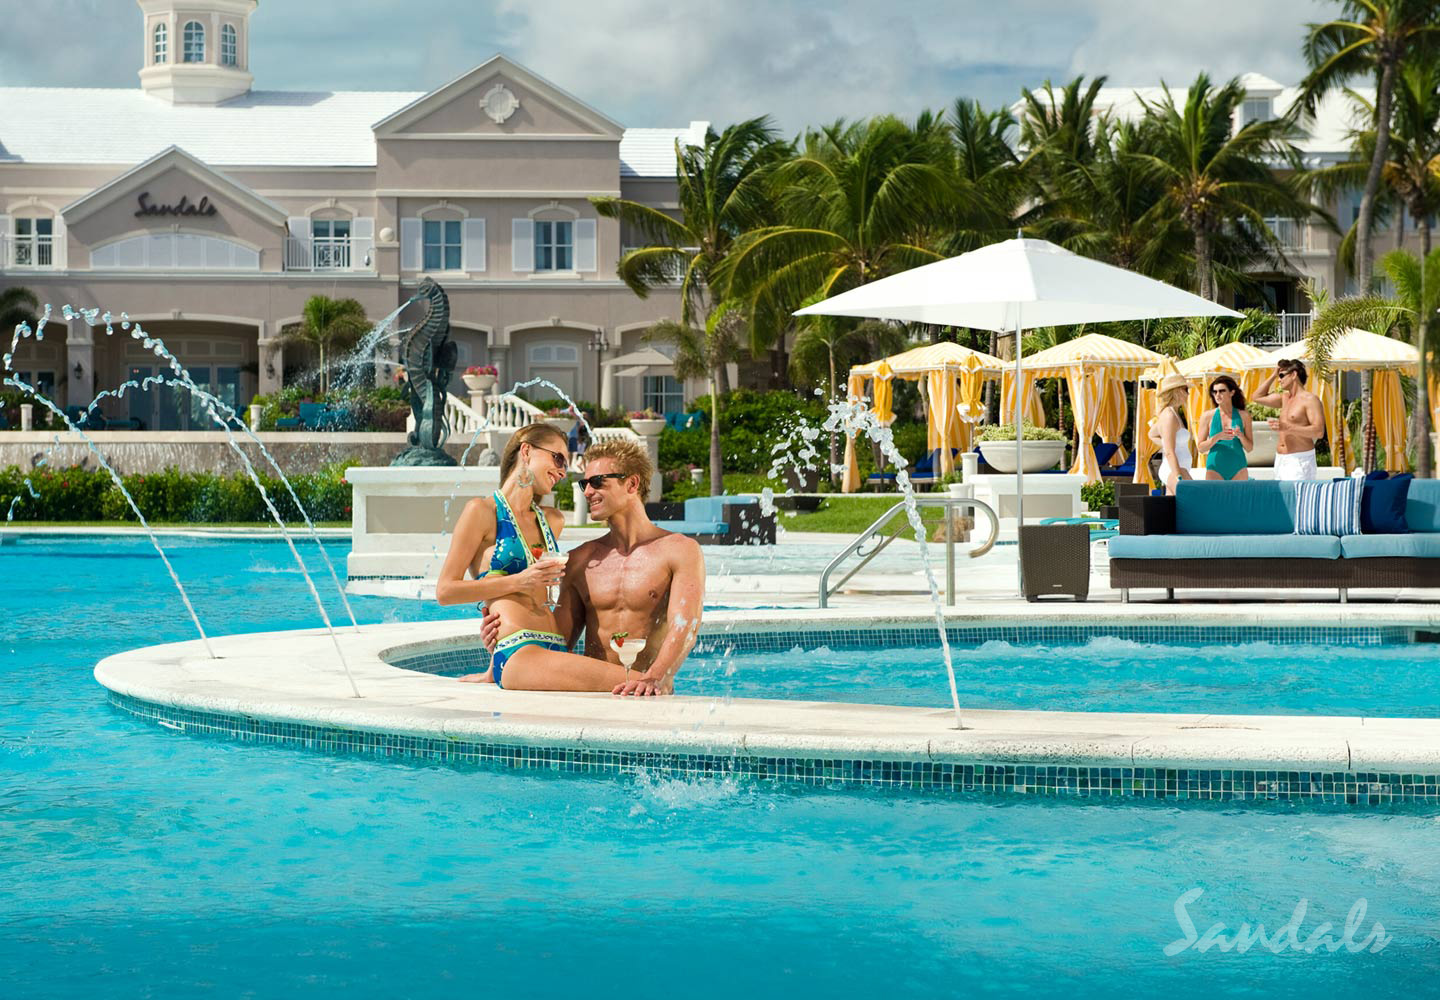 Travel Agency All-Inclusive Resort Sandals Emerald Bay 018